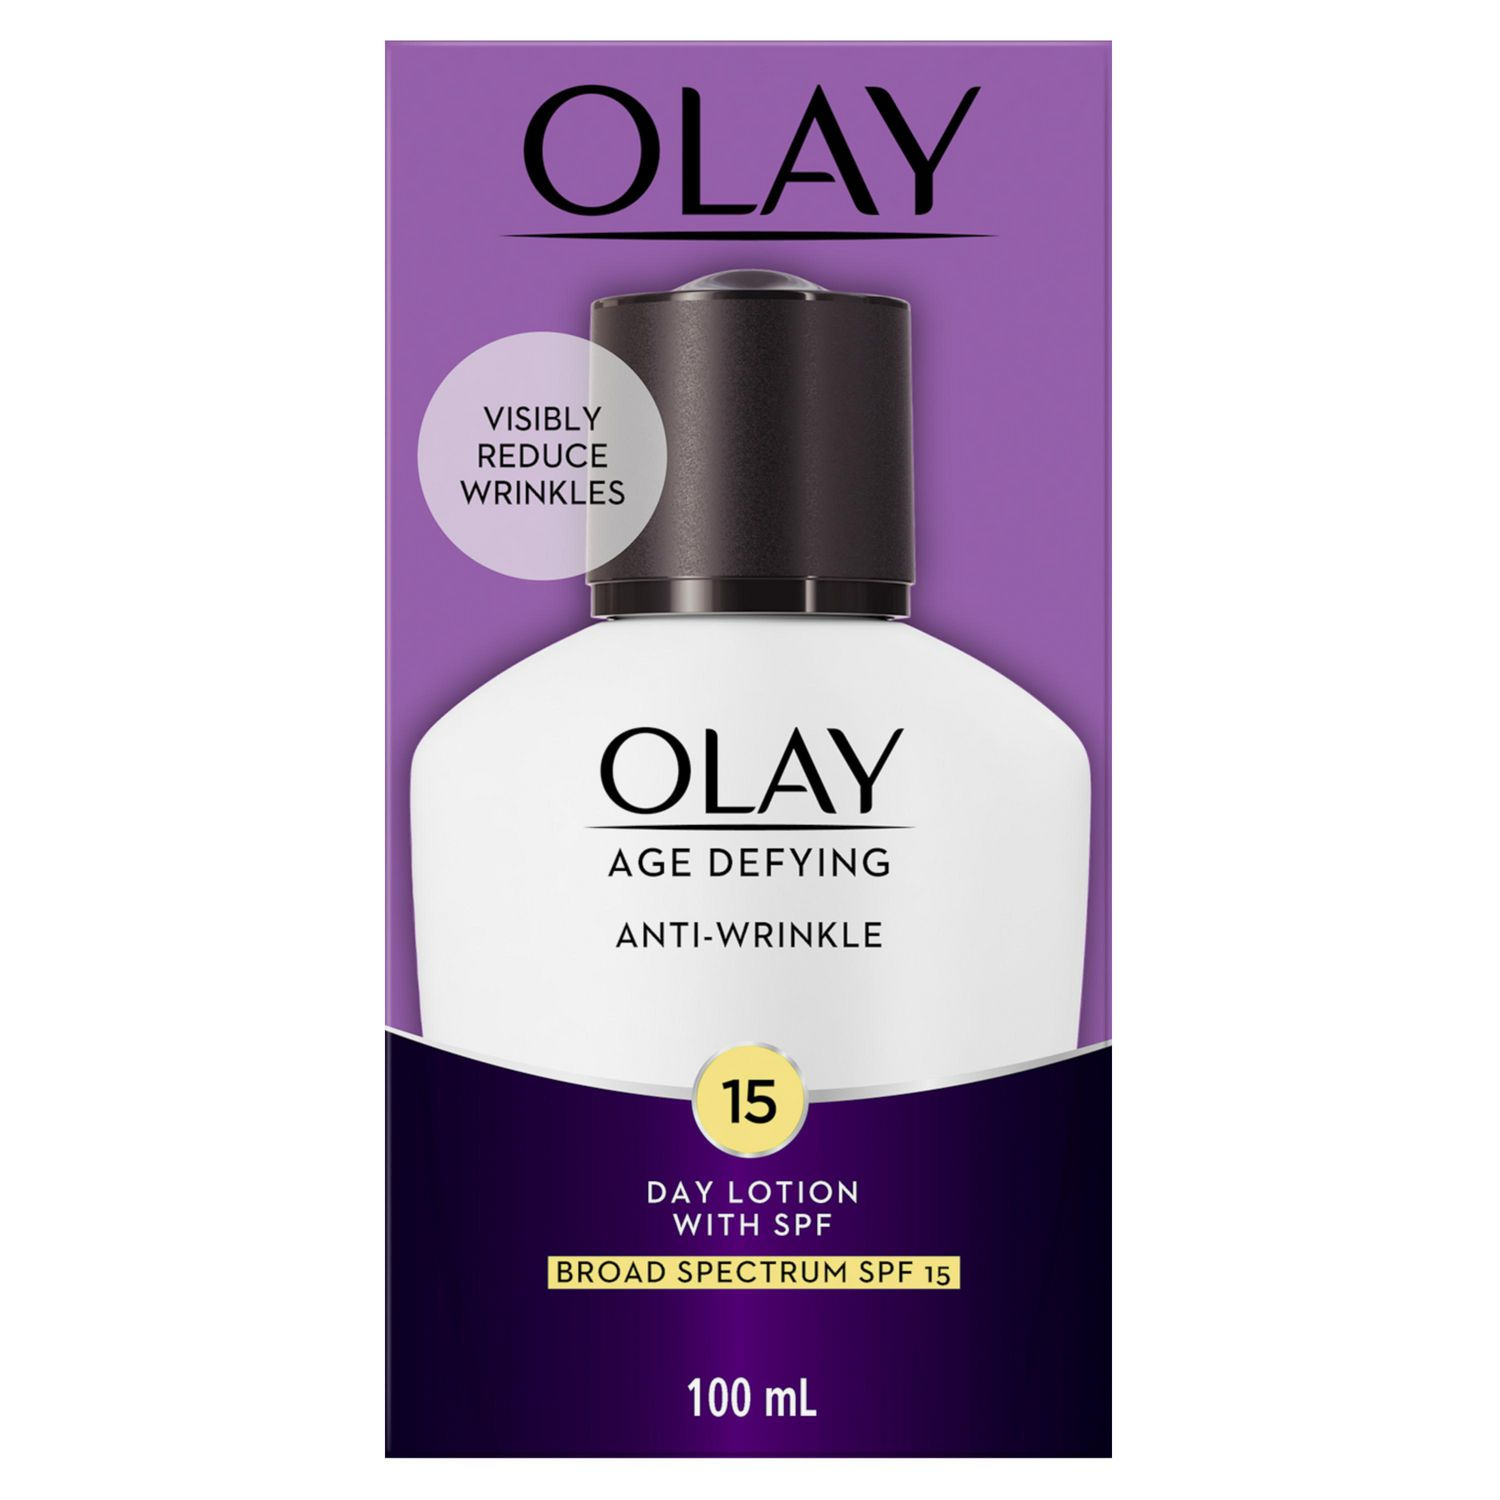 Olay Age Defying Anti Wrinkle Face Lotion With Spf 15 Walmart Canada Body Sp 100ml